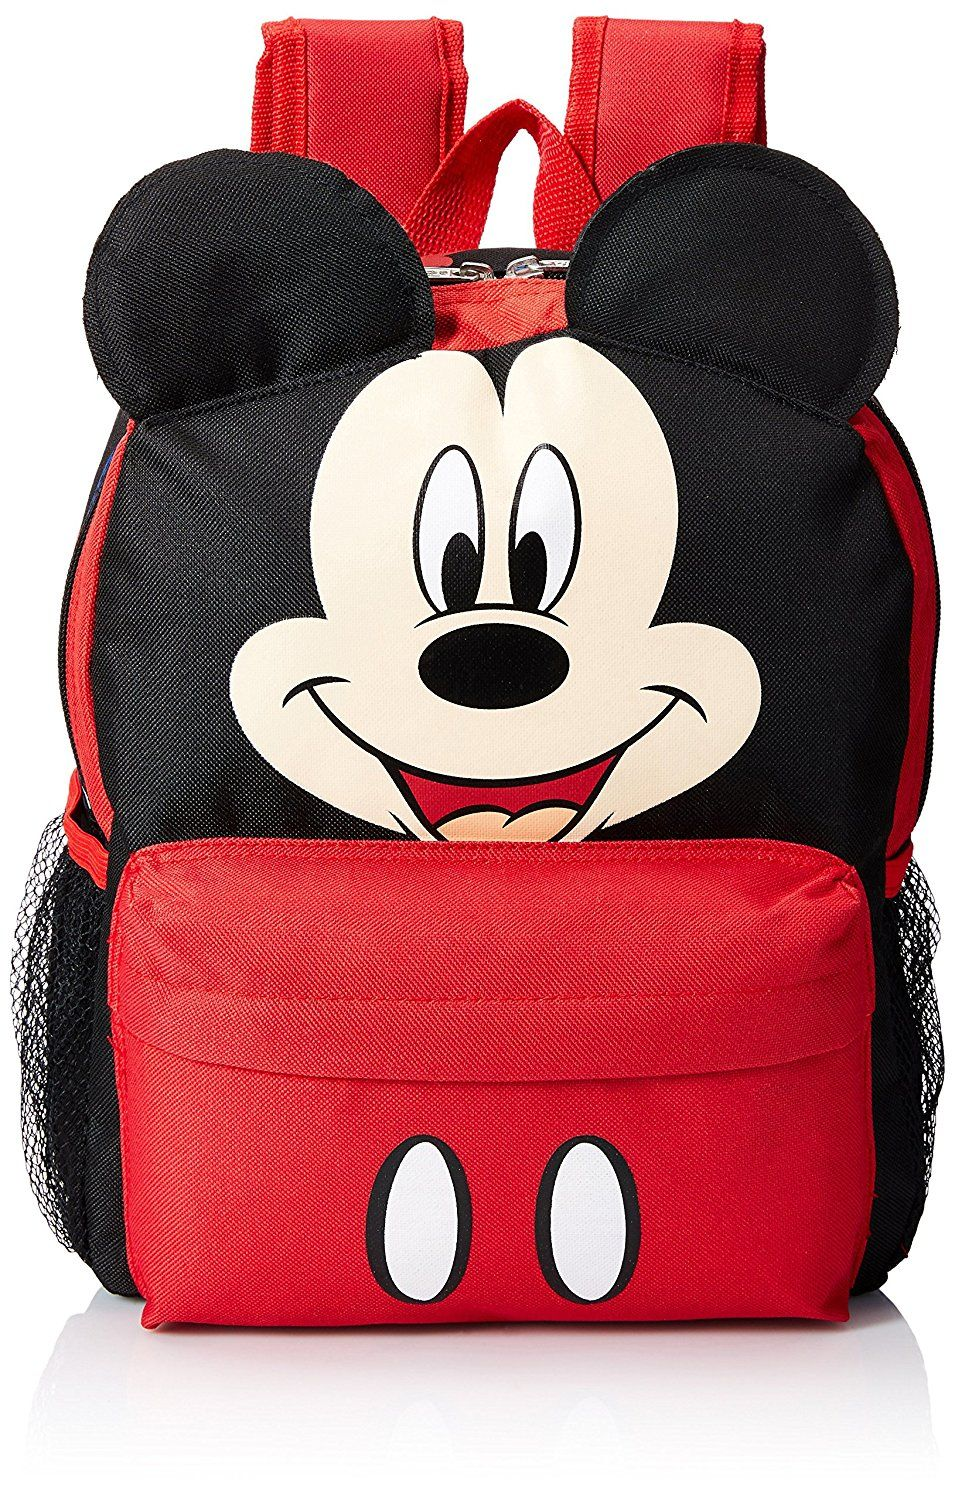 874f584f1c58 Disney Junior - Mickey Mouse Backpack with Ears